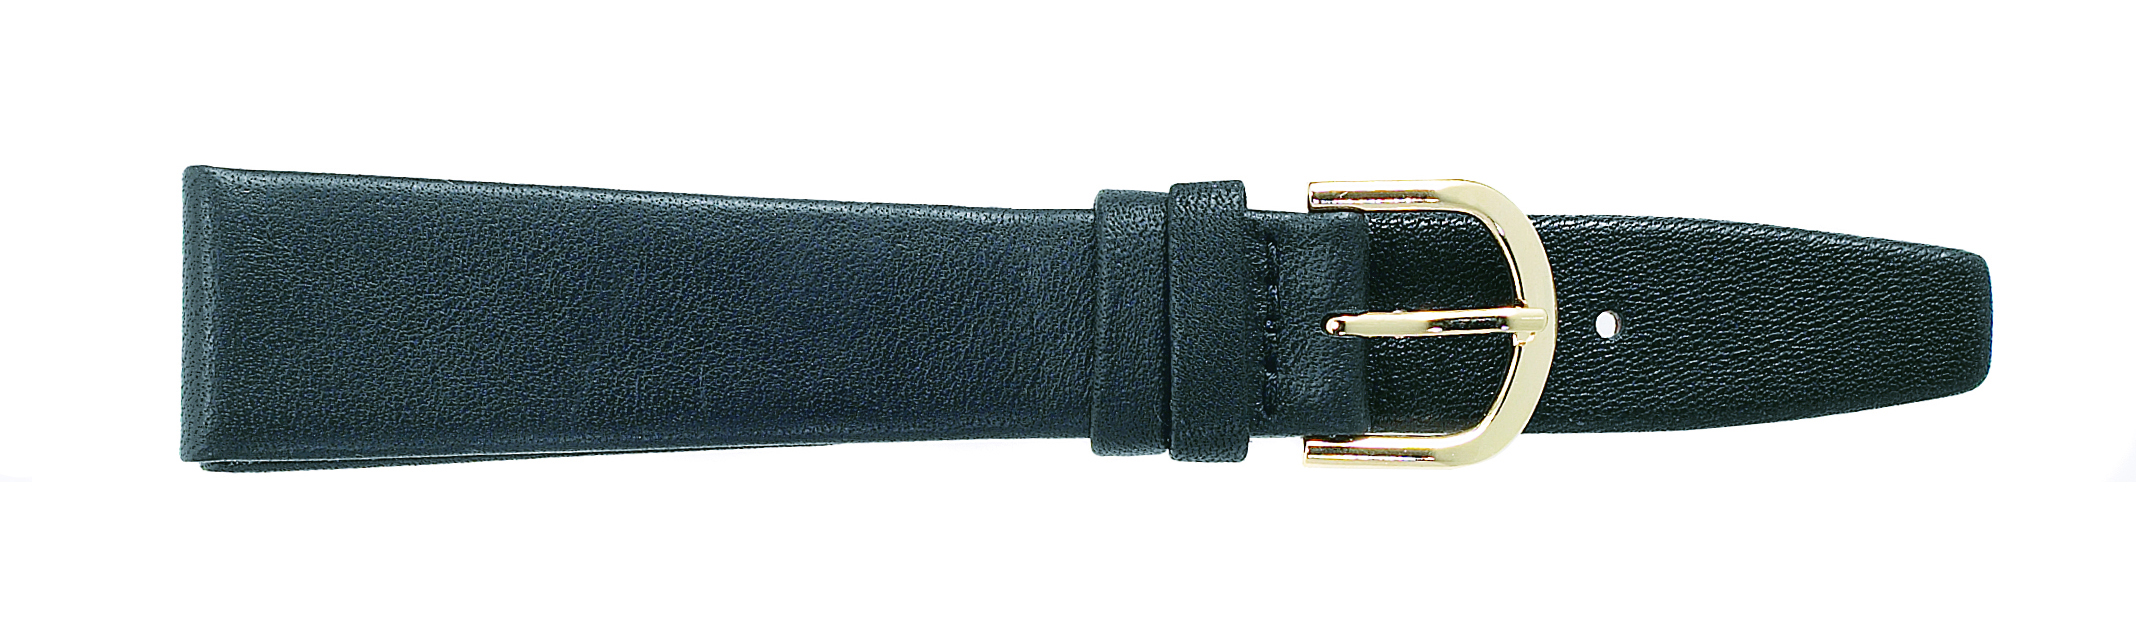 18MM Flat Calf Black Strap-0